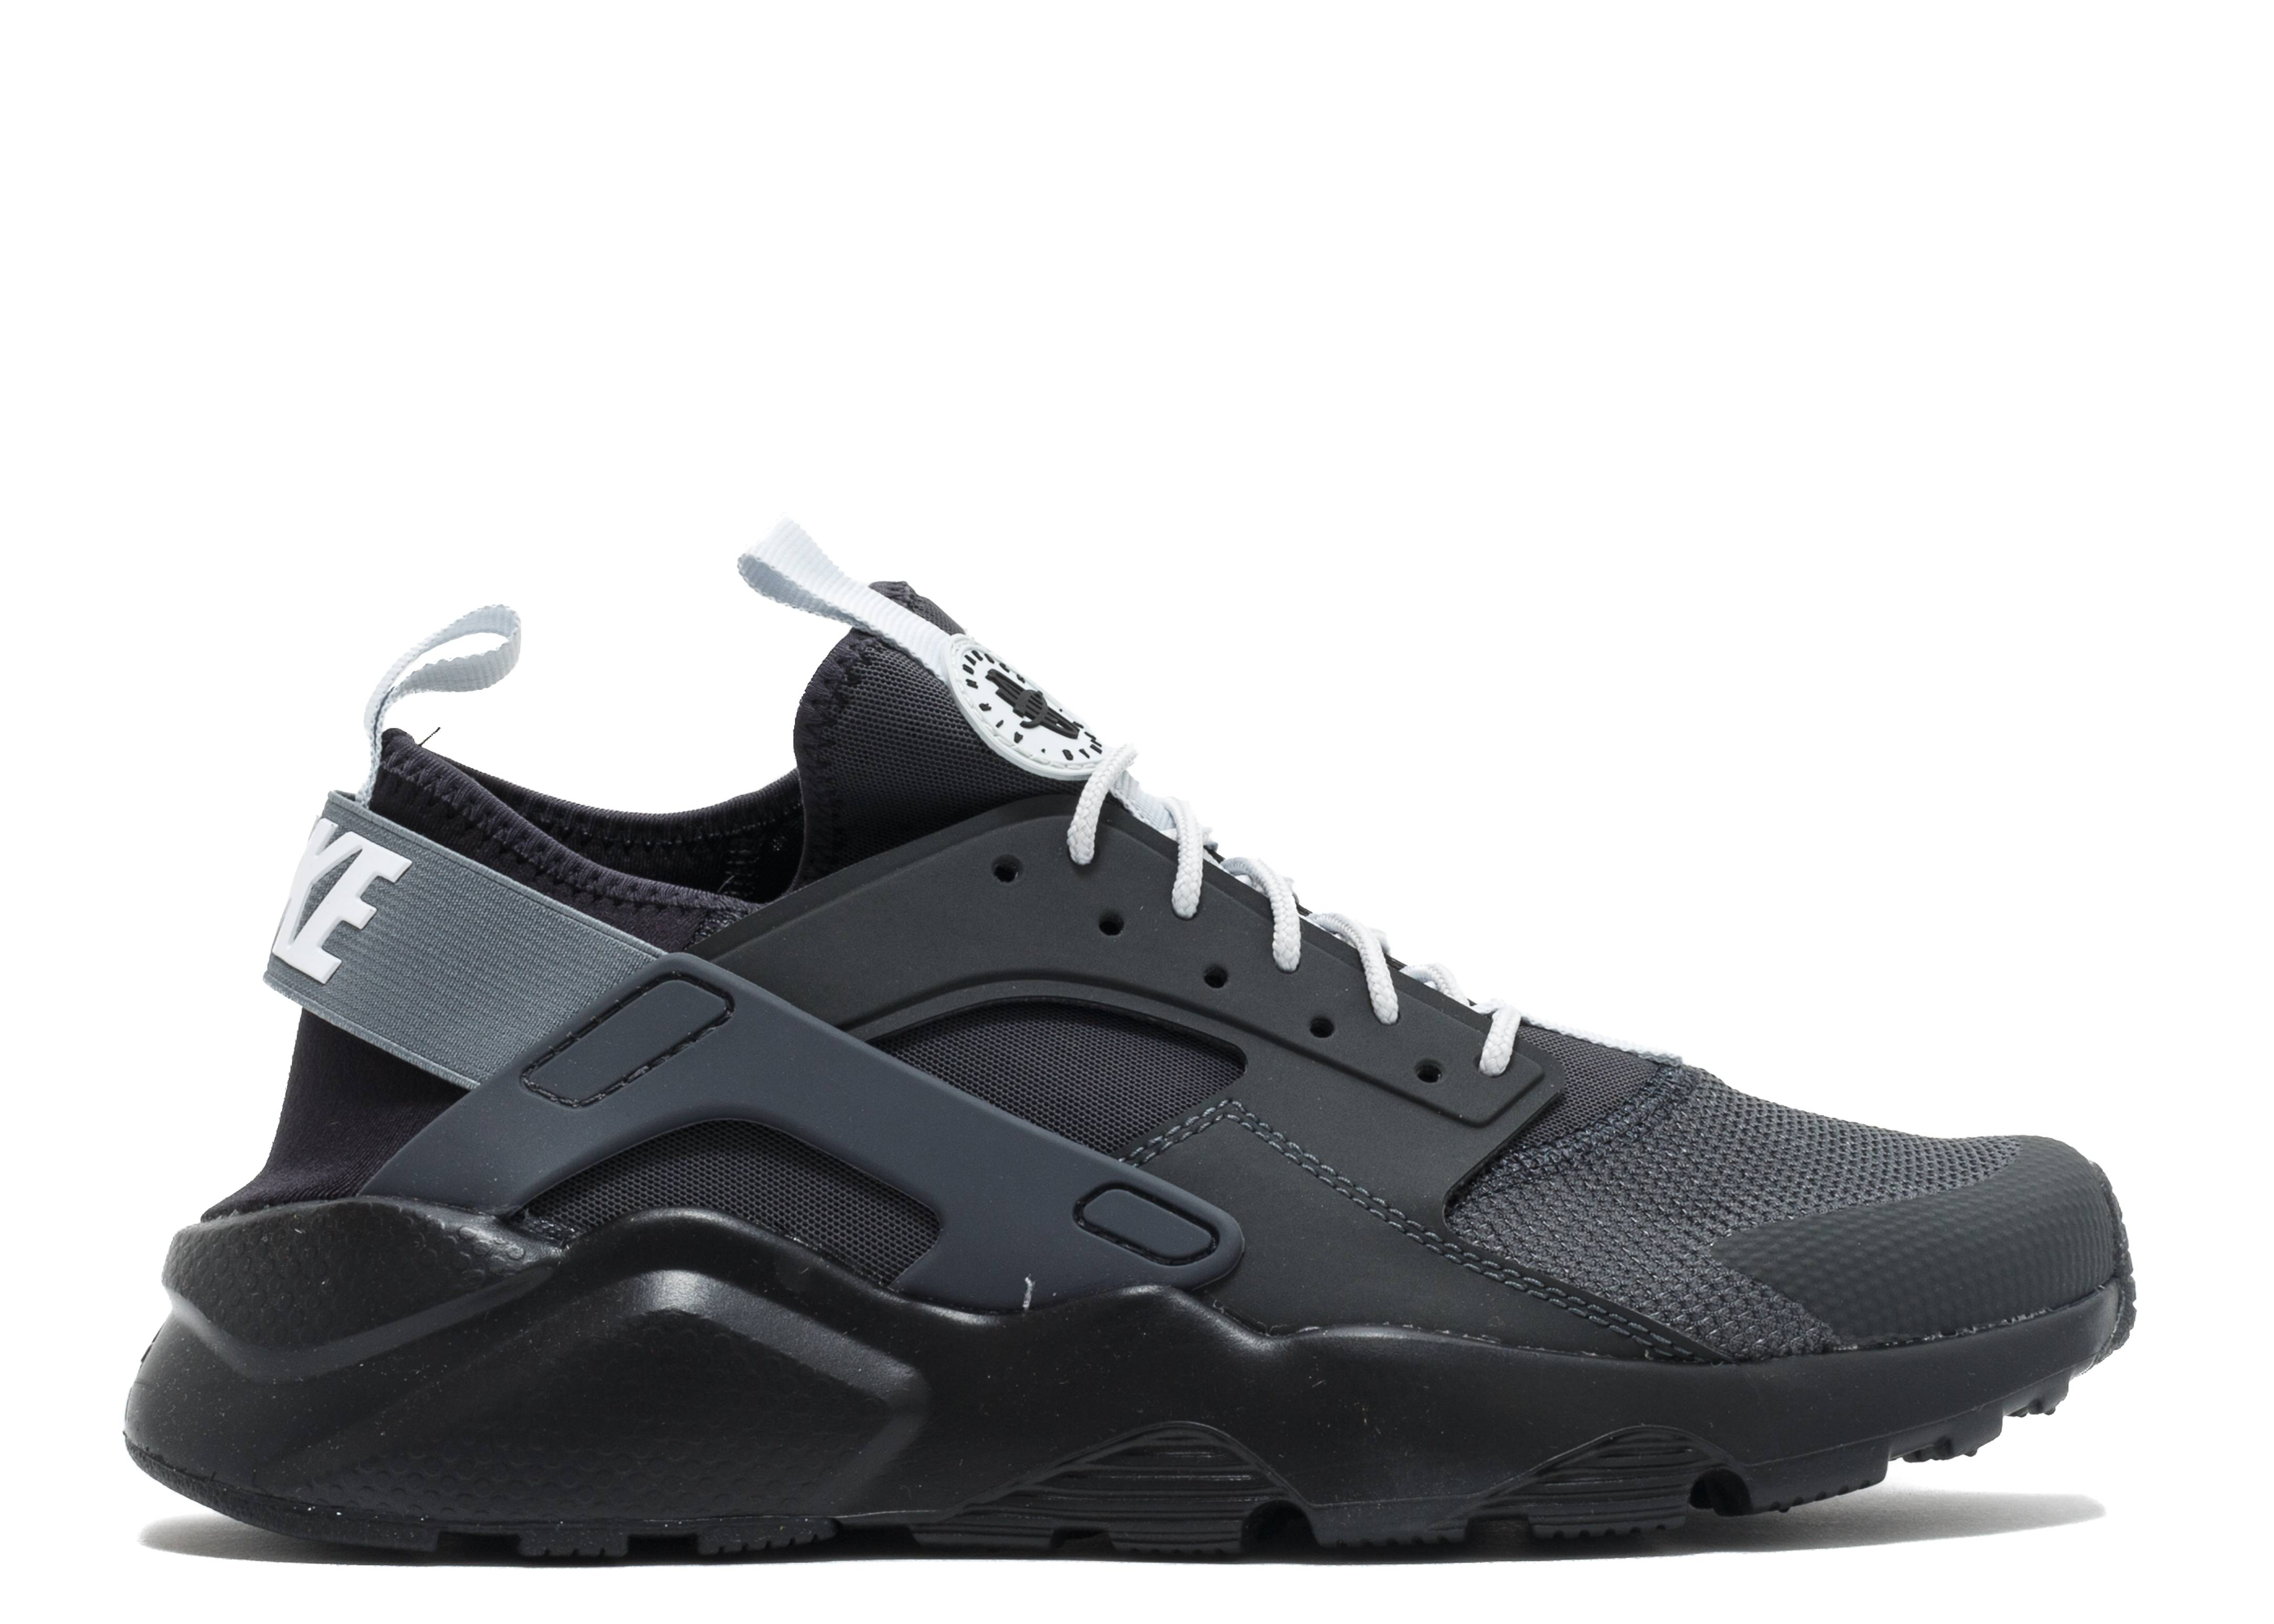 new product 4eb8d d95af Nike Air Huarache Run Ultra - Nike - 819685 004 - anthracite black-black-white    Flight Club